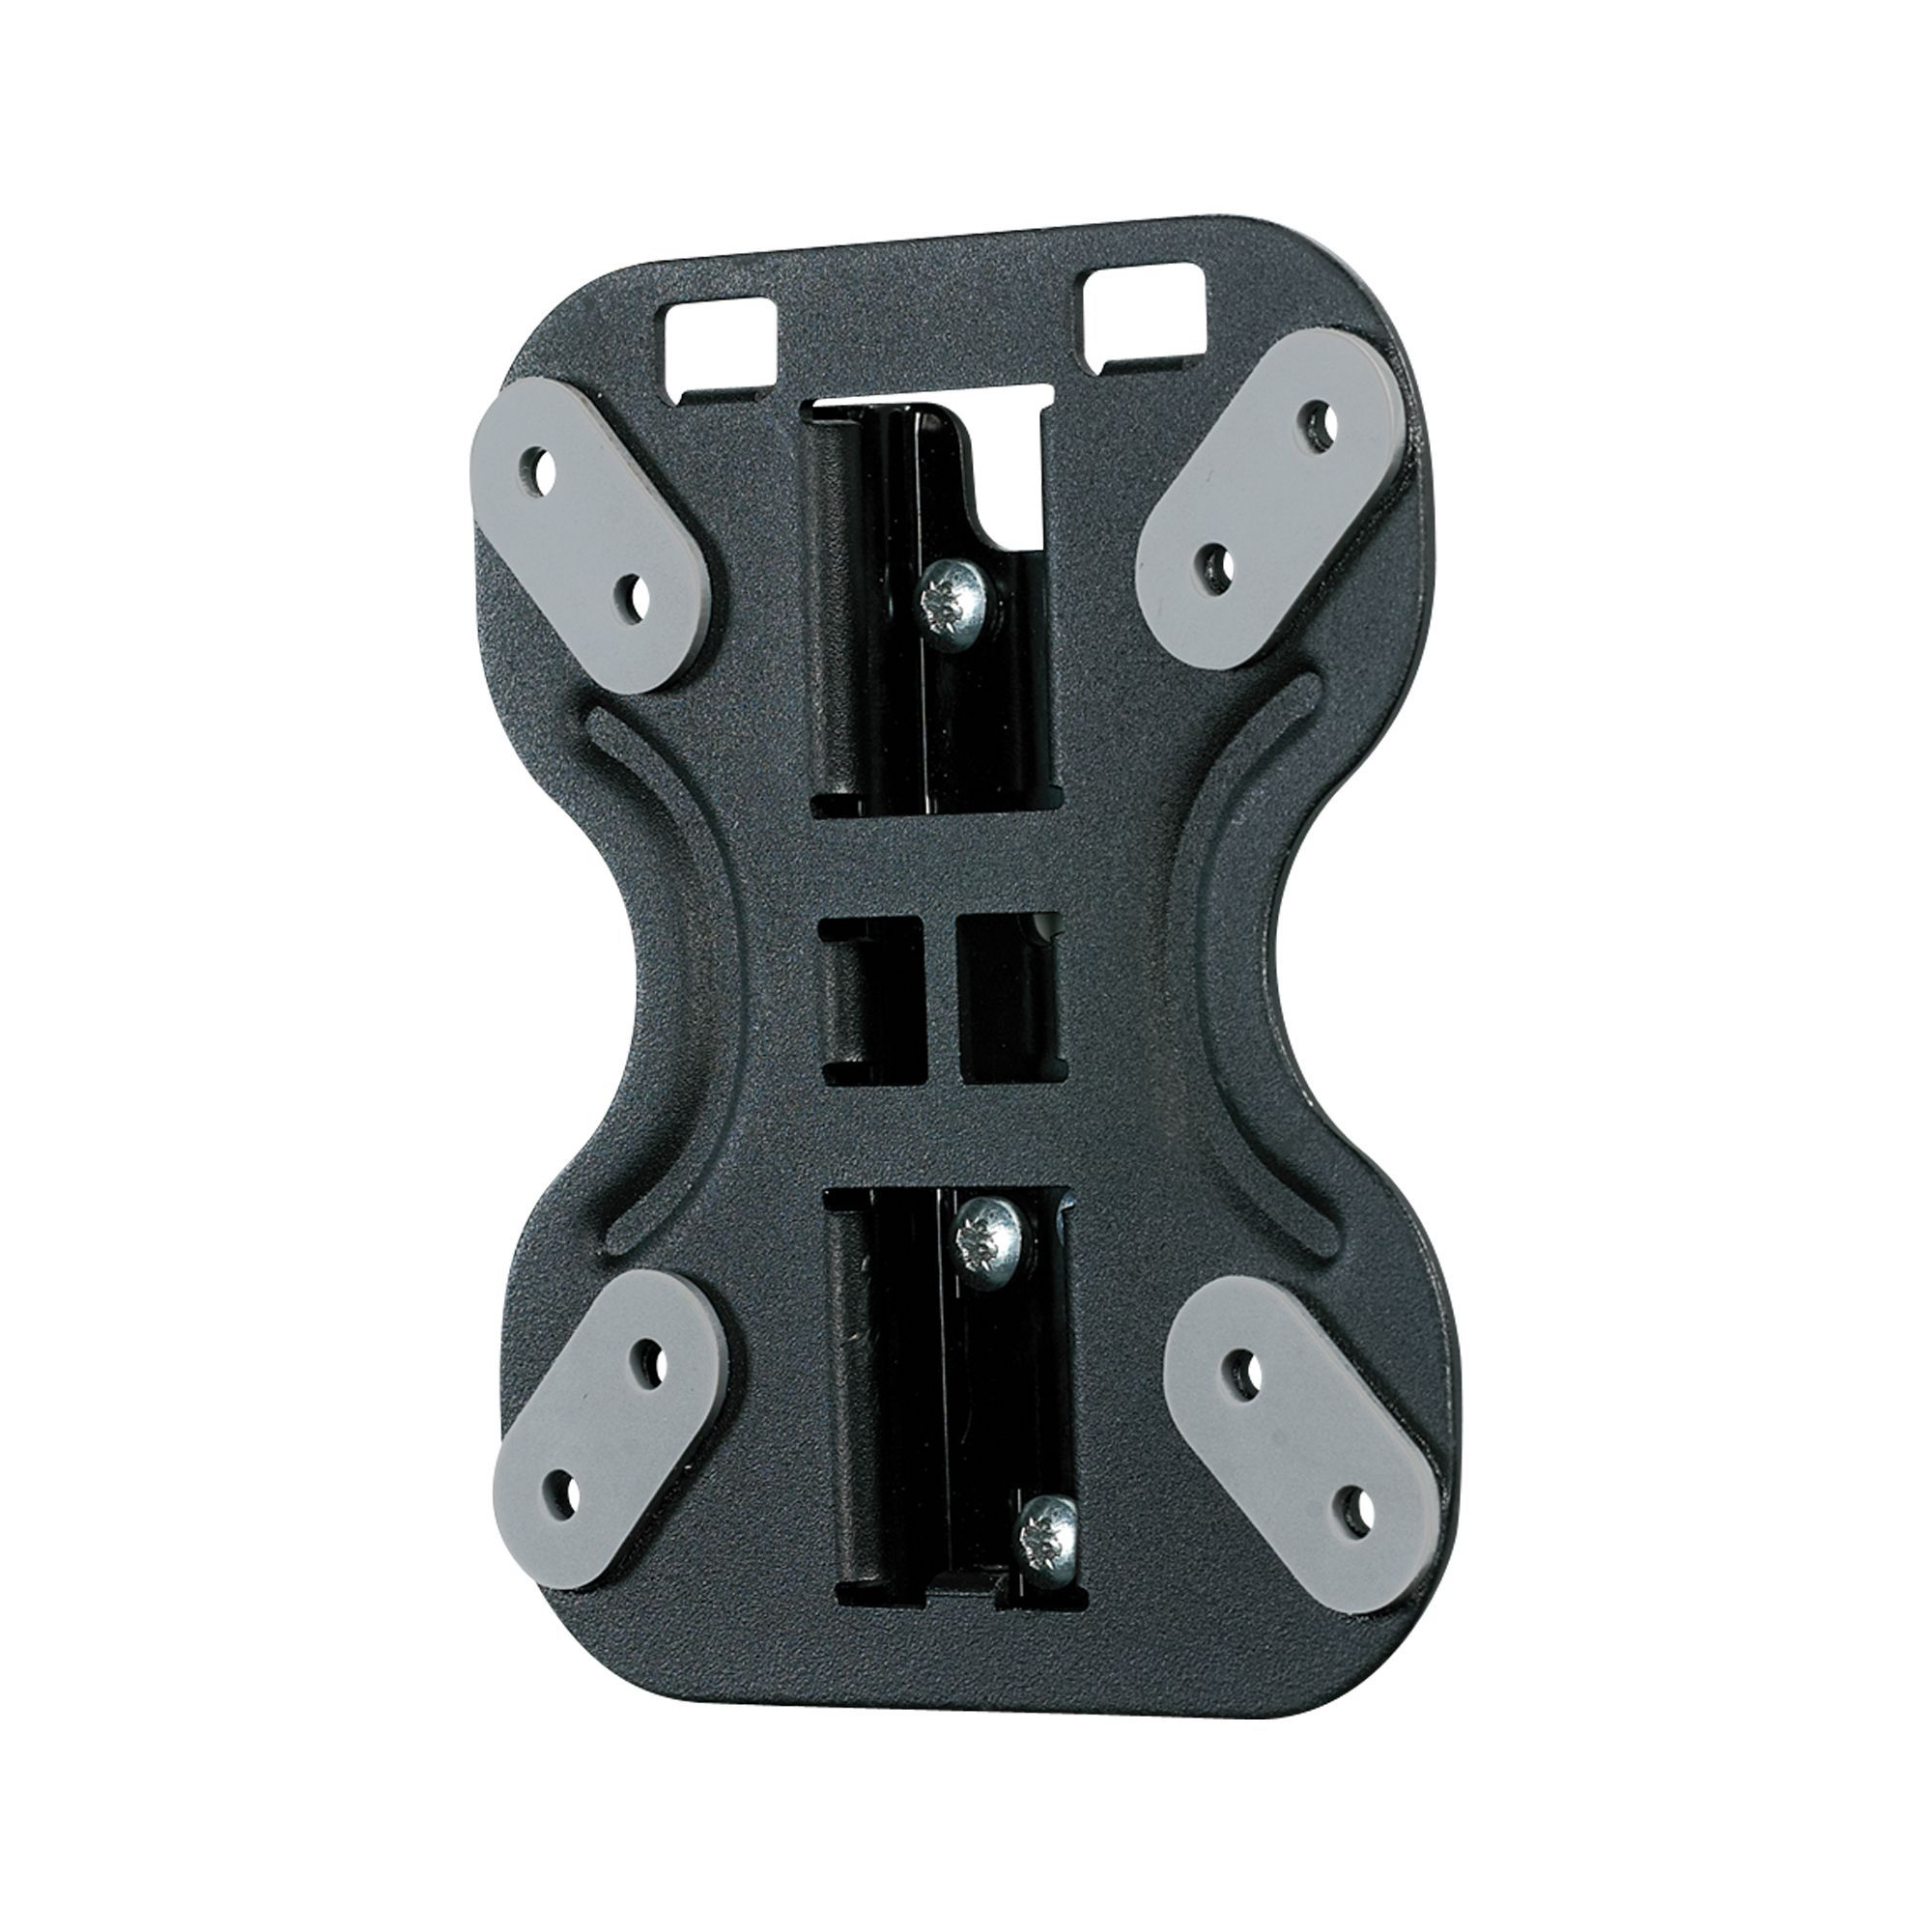 Ross Black Fixed Tv Mounting Bracket 13-23 Inches